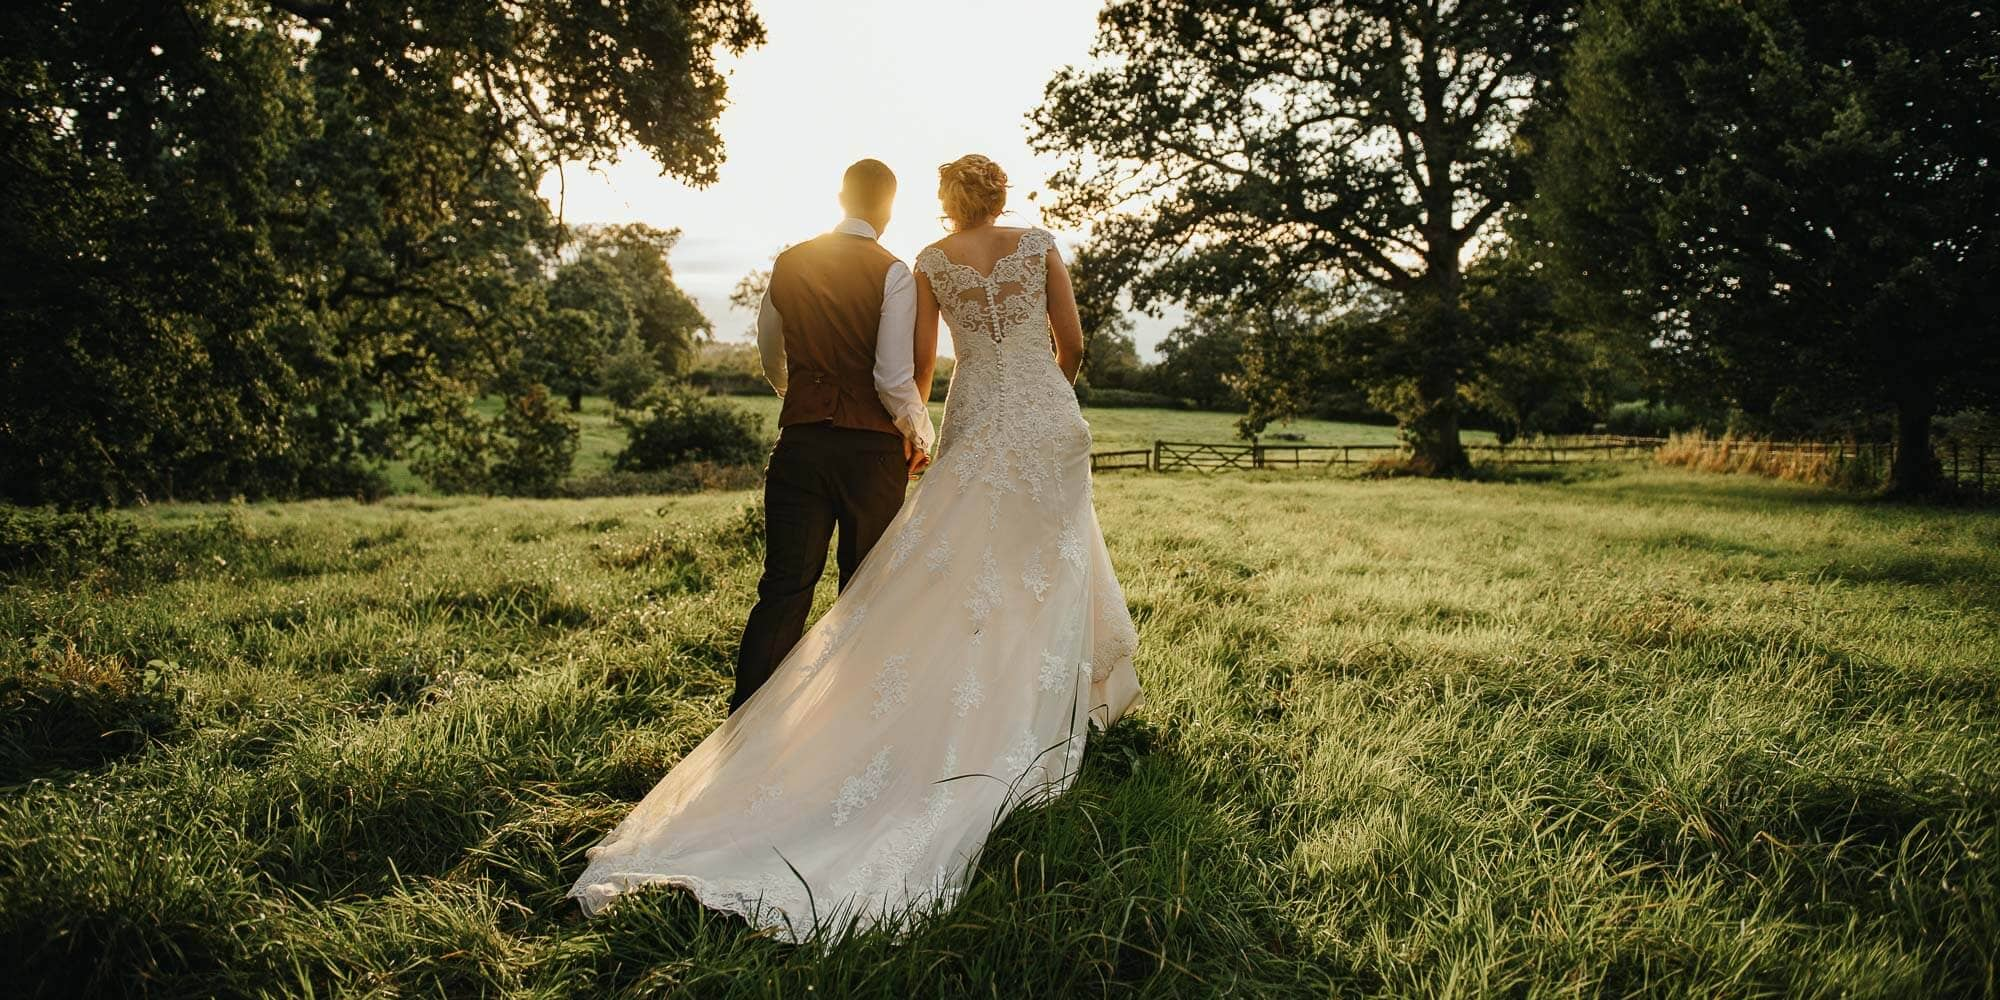 Birde and groom walk into the sunset in grassy field surrounded by trees